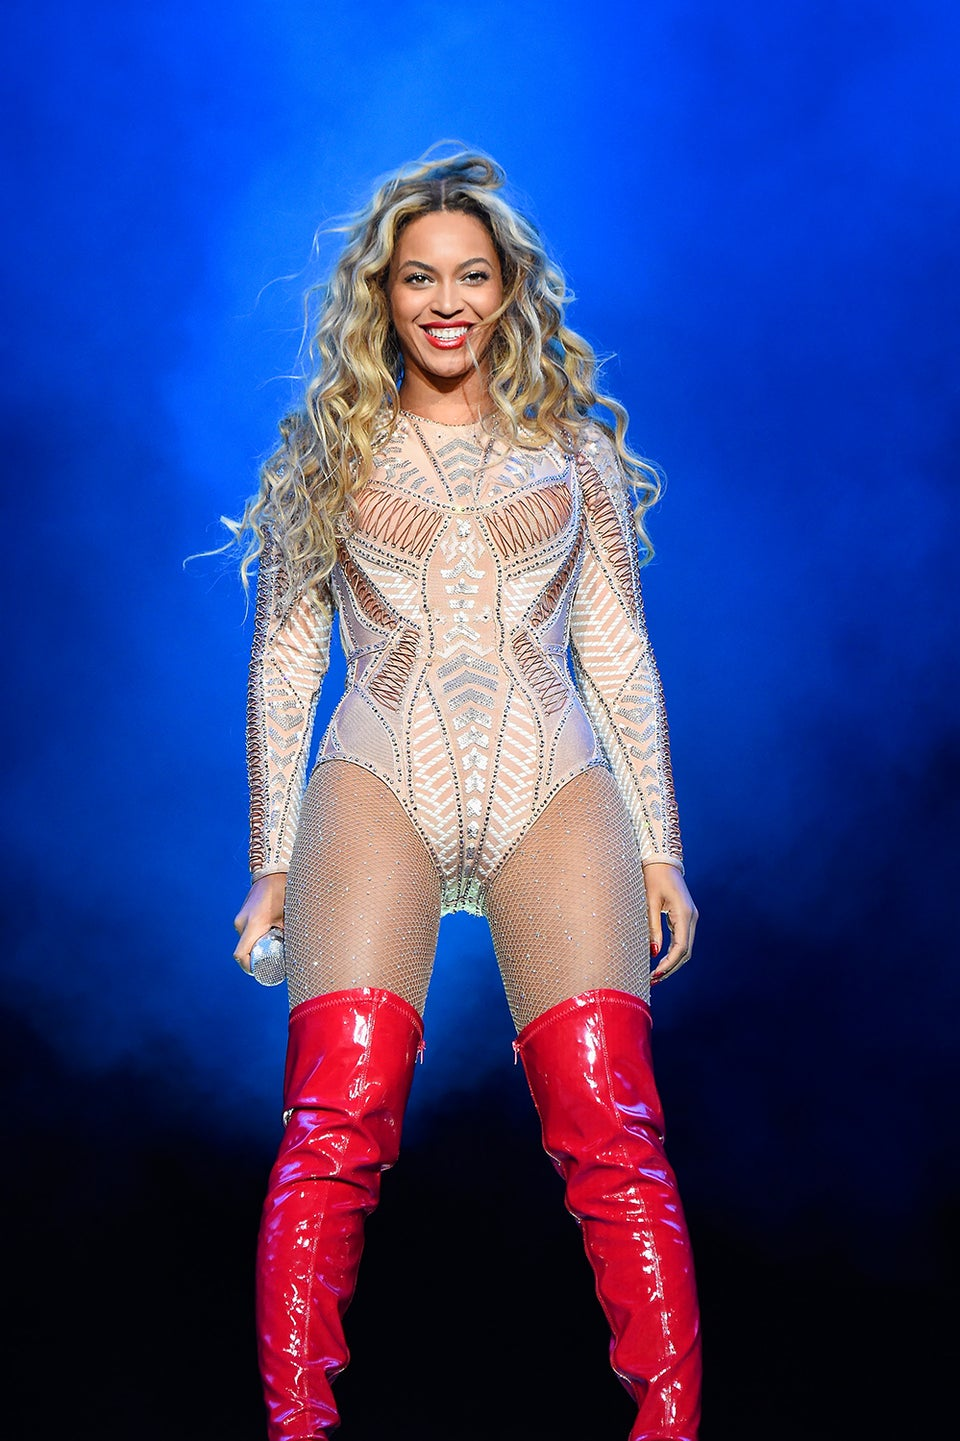 Beyoncé Fans Already Have Baby Name Suggestions